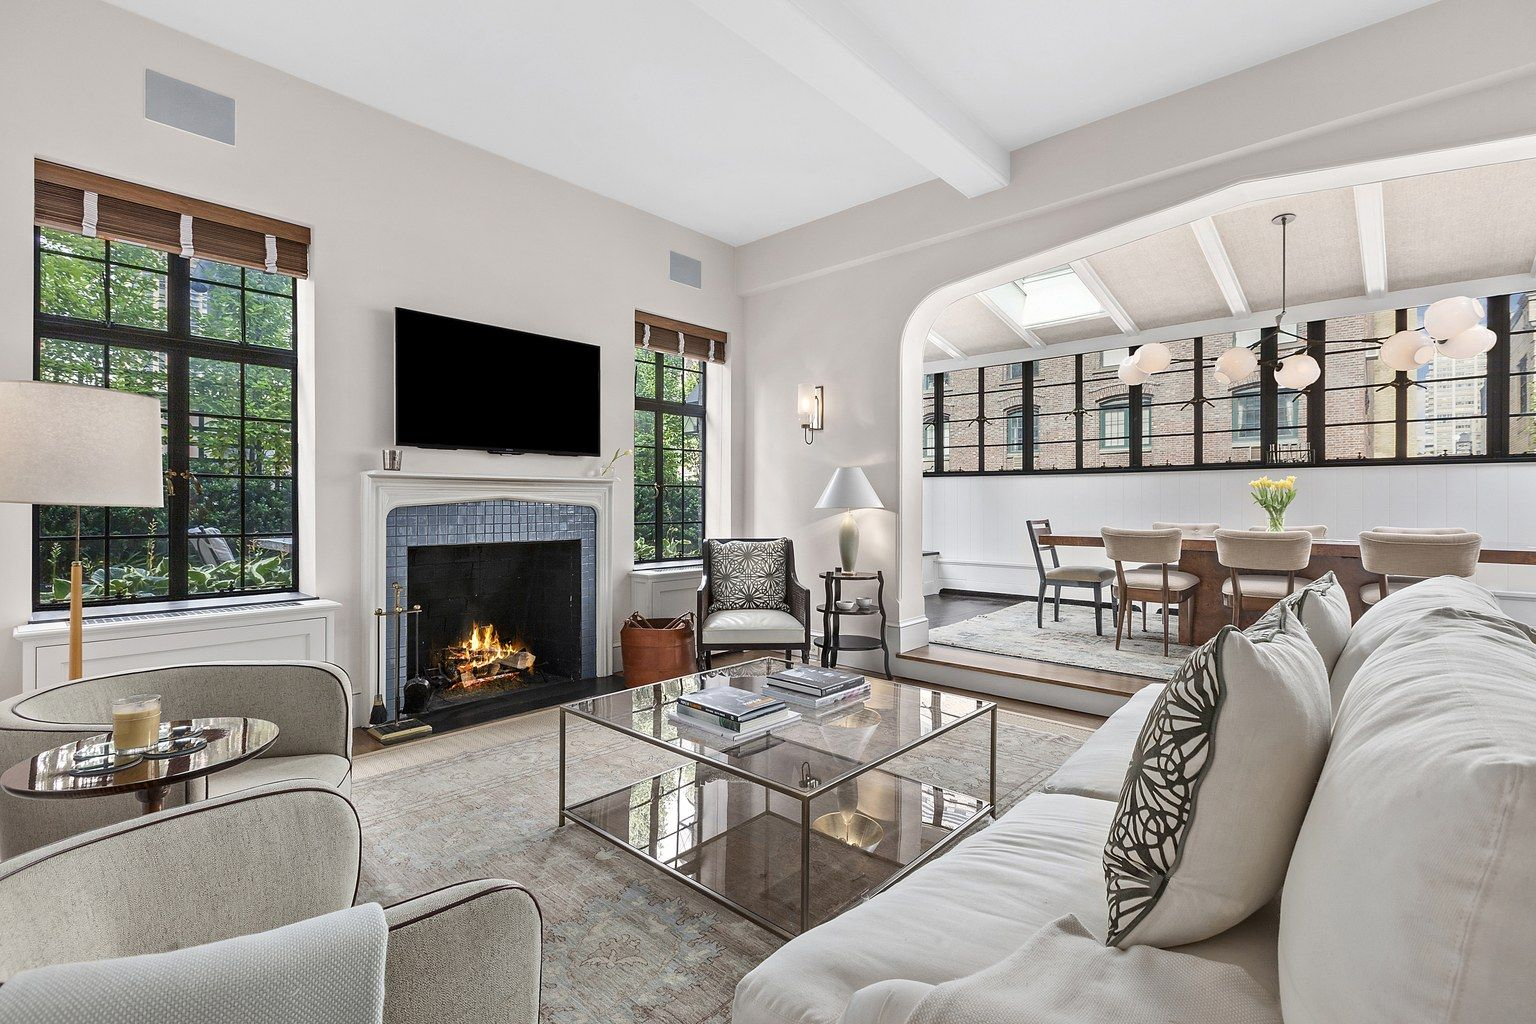 Jon Hamm's New York City Penthouse Could Be Yours (to Rent